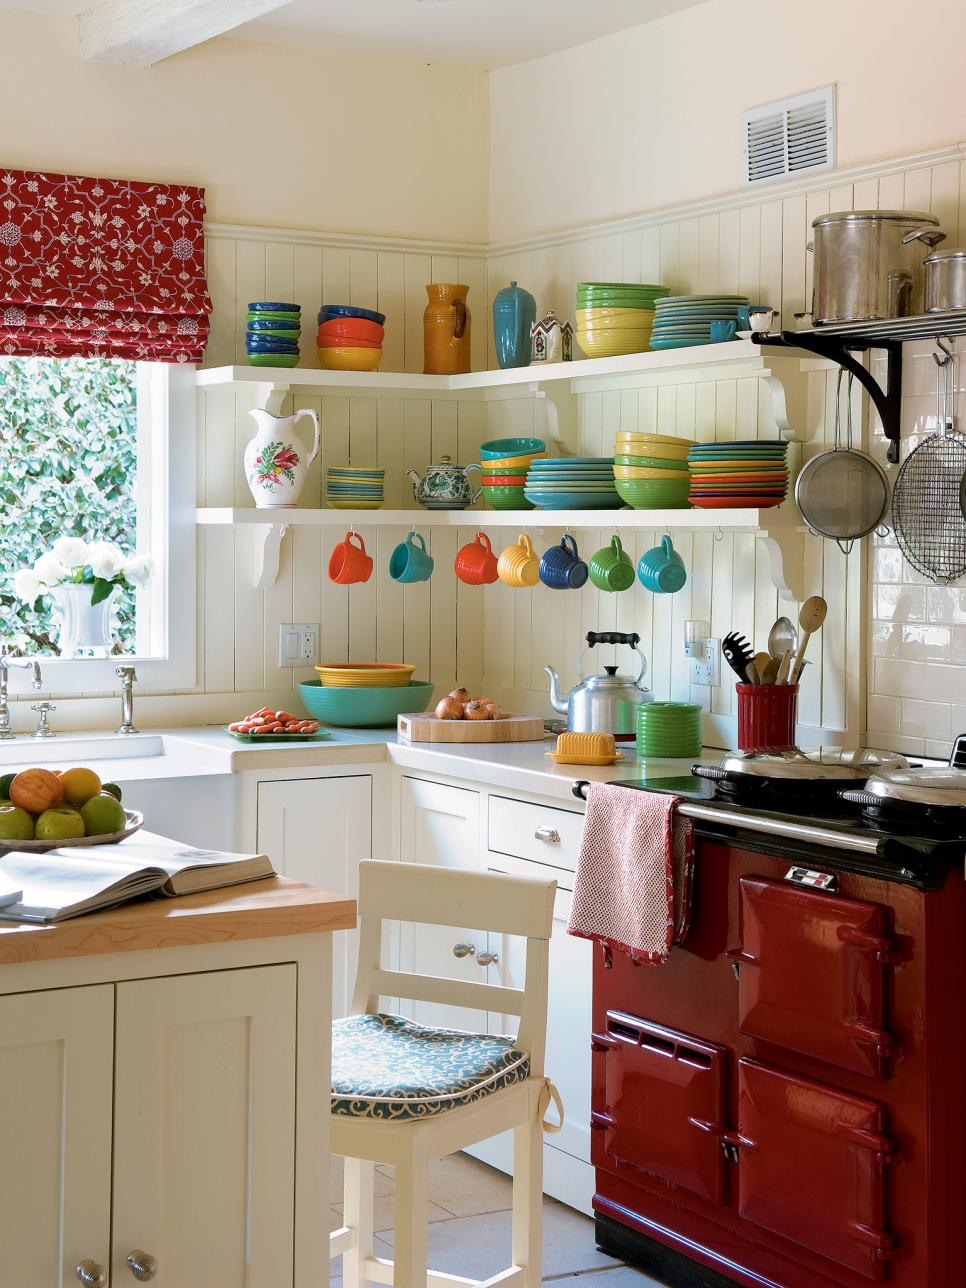 Small Kitchen Design Ideas image from hgtv Pictures Of Small Kitchen Design Ideas From Hgtv Kitchen Ideas Design With Cabinets Islands Backsplashes Hgtv